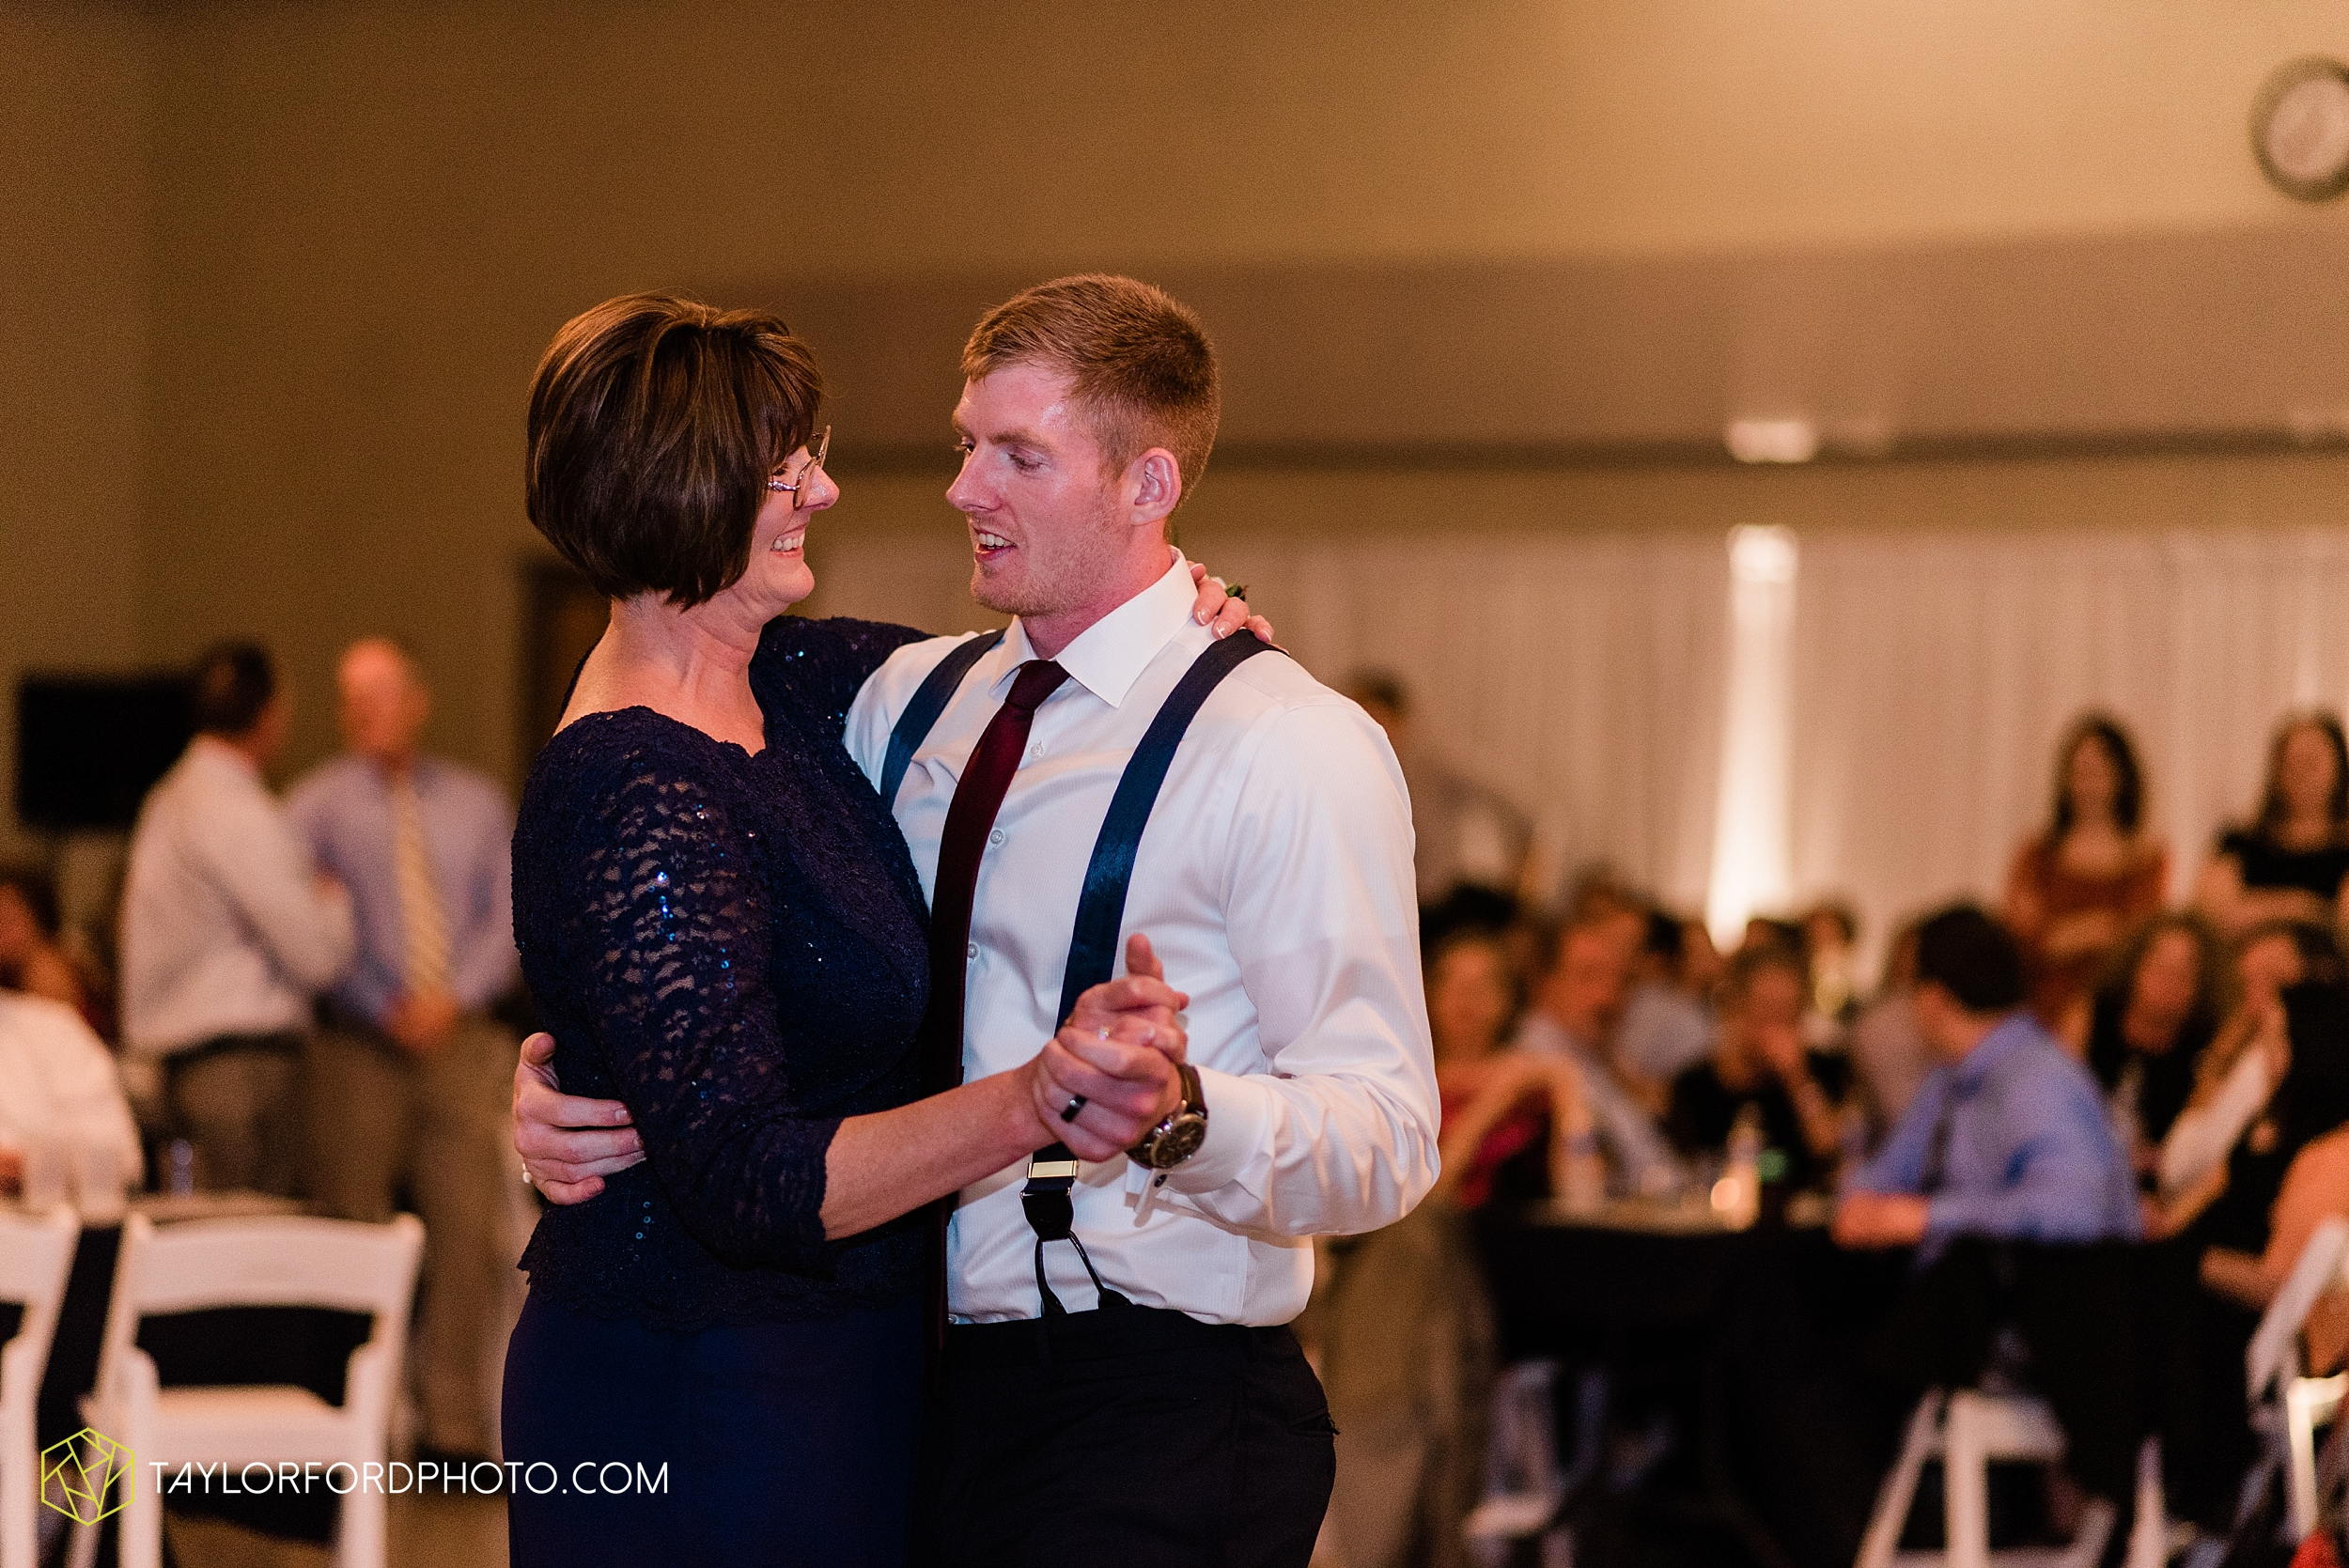 gayle-rayman-mike-steele-ottoville-ohio-wedding-immaculate-conception-parish-center-wedding-sycamore-lake-winery-wannamachers-photographer-taylor-ford-photography_0439.jpg